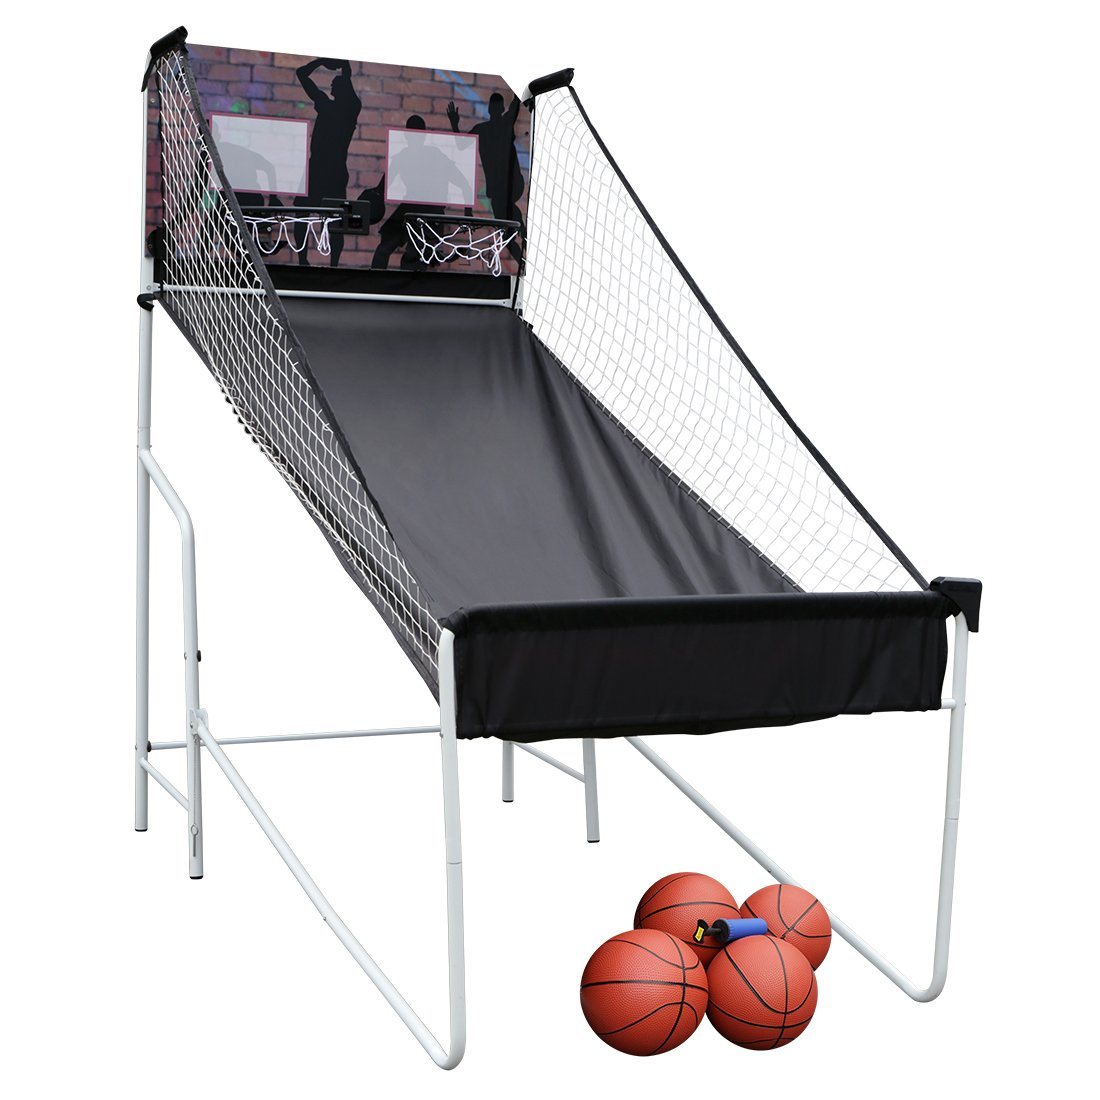 AHHC INC Folding Basketball Machine-Double Hoop Electronic Basketball Game System with 4 Balls by AHHC INC